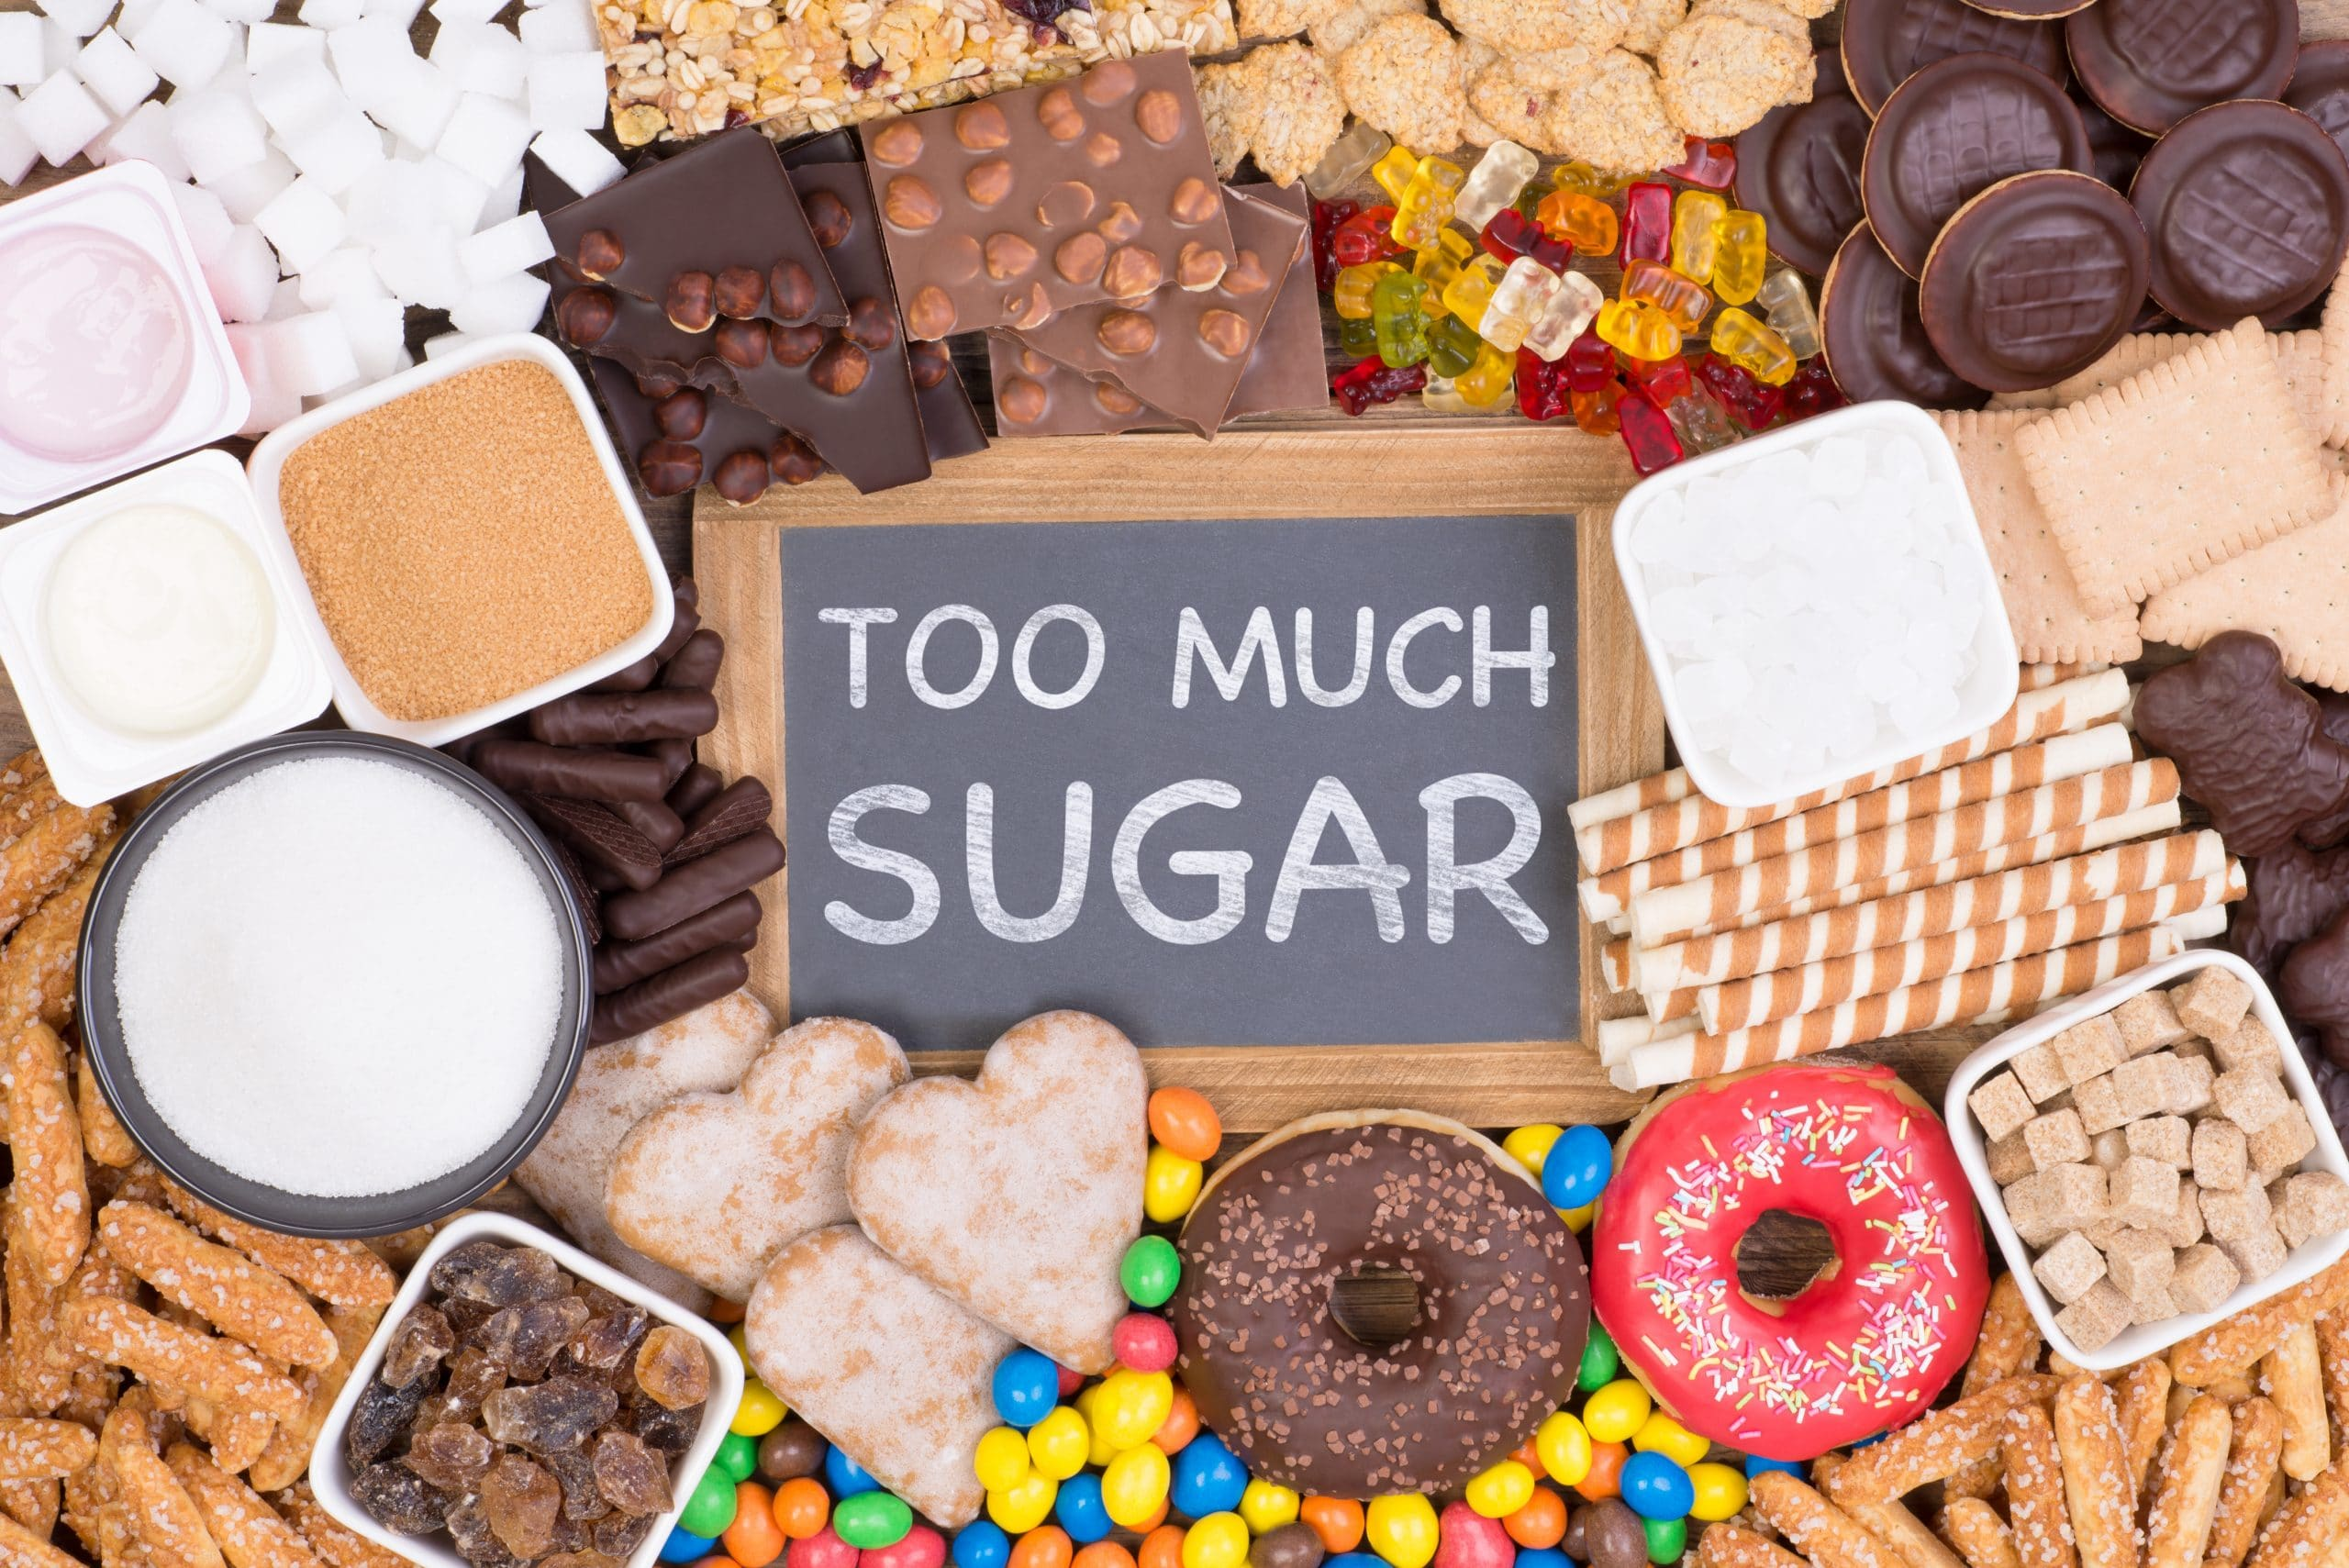 sign that says too much sugar and is surrounded by sugary foods